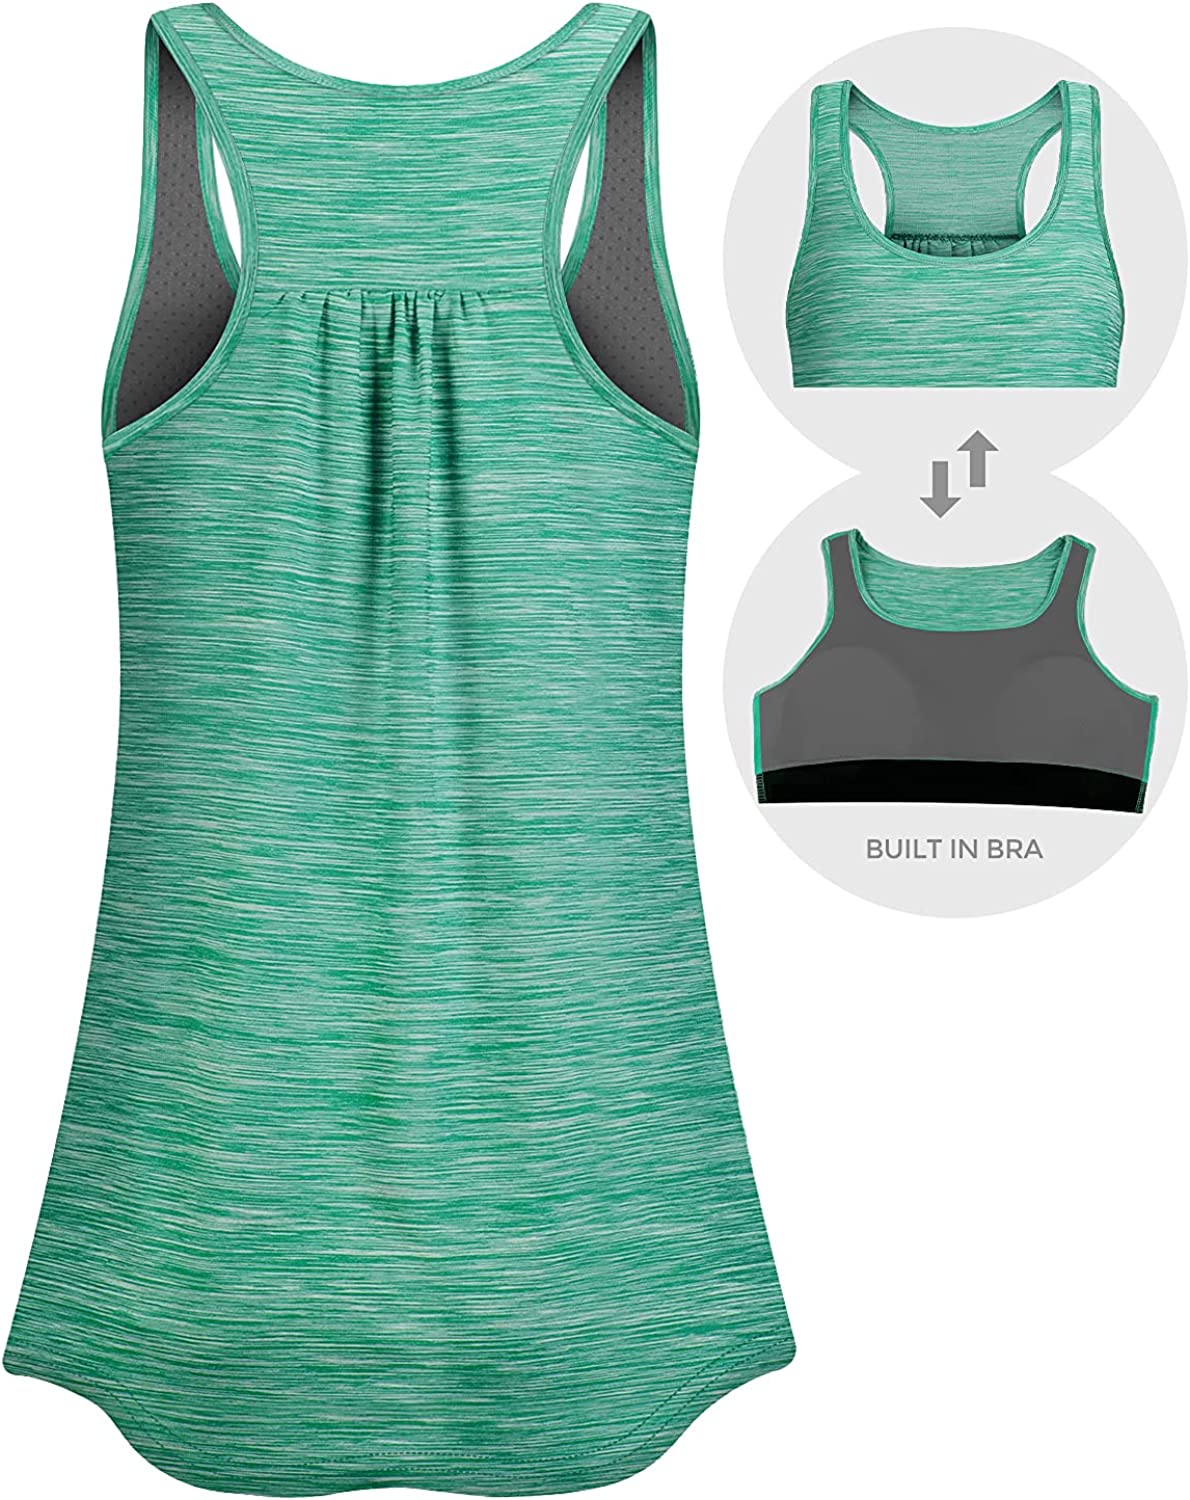 Tanst Sky Women's Tank Top Built in Bra with Removable Pads Workout Tops Sleeveless Racerback Activewear: Clothing